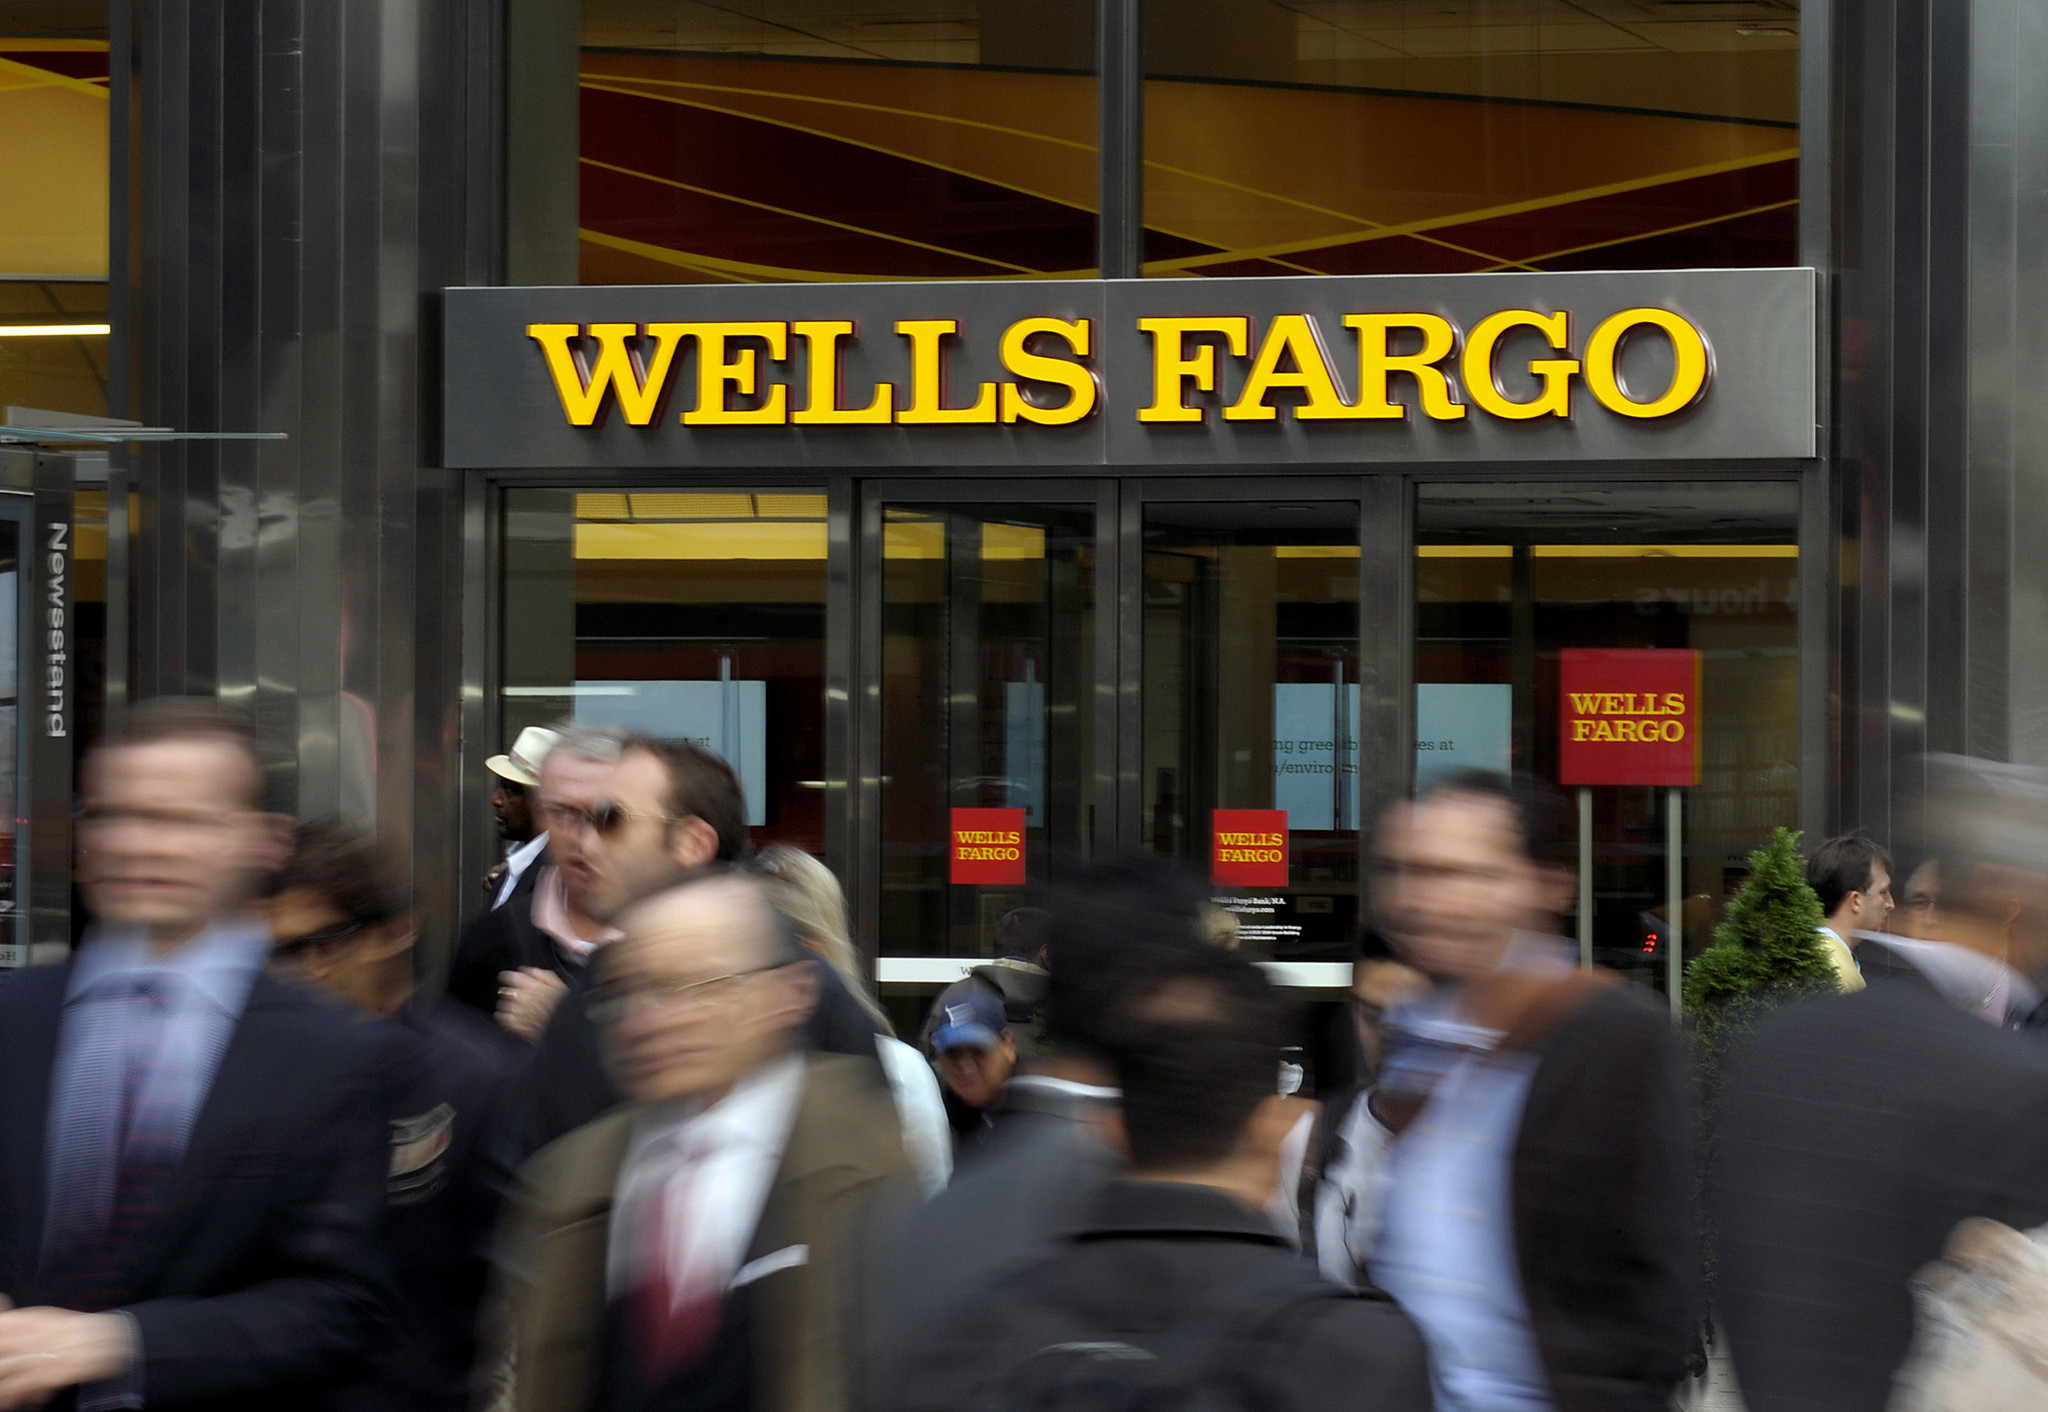 Pedestrians pass in front of a Wells Fargo & Co. bank branch in New York, U.S., on Wednesday, Oct. 10, 2012. Wells Fargo & Co is scheduled to release earnings data on Oct. 12. Photographer: Peter Foley/Bloomberg ** DP OUT, OS OUT, HOY OUT, TCN OUT **